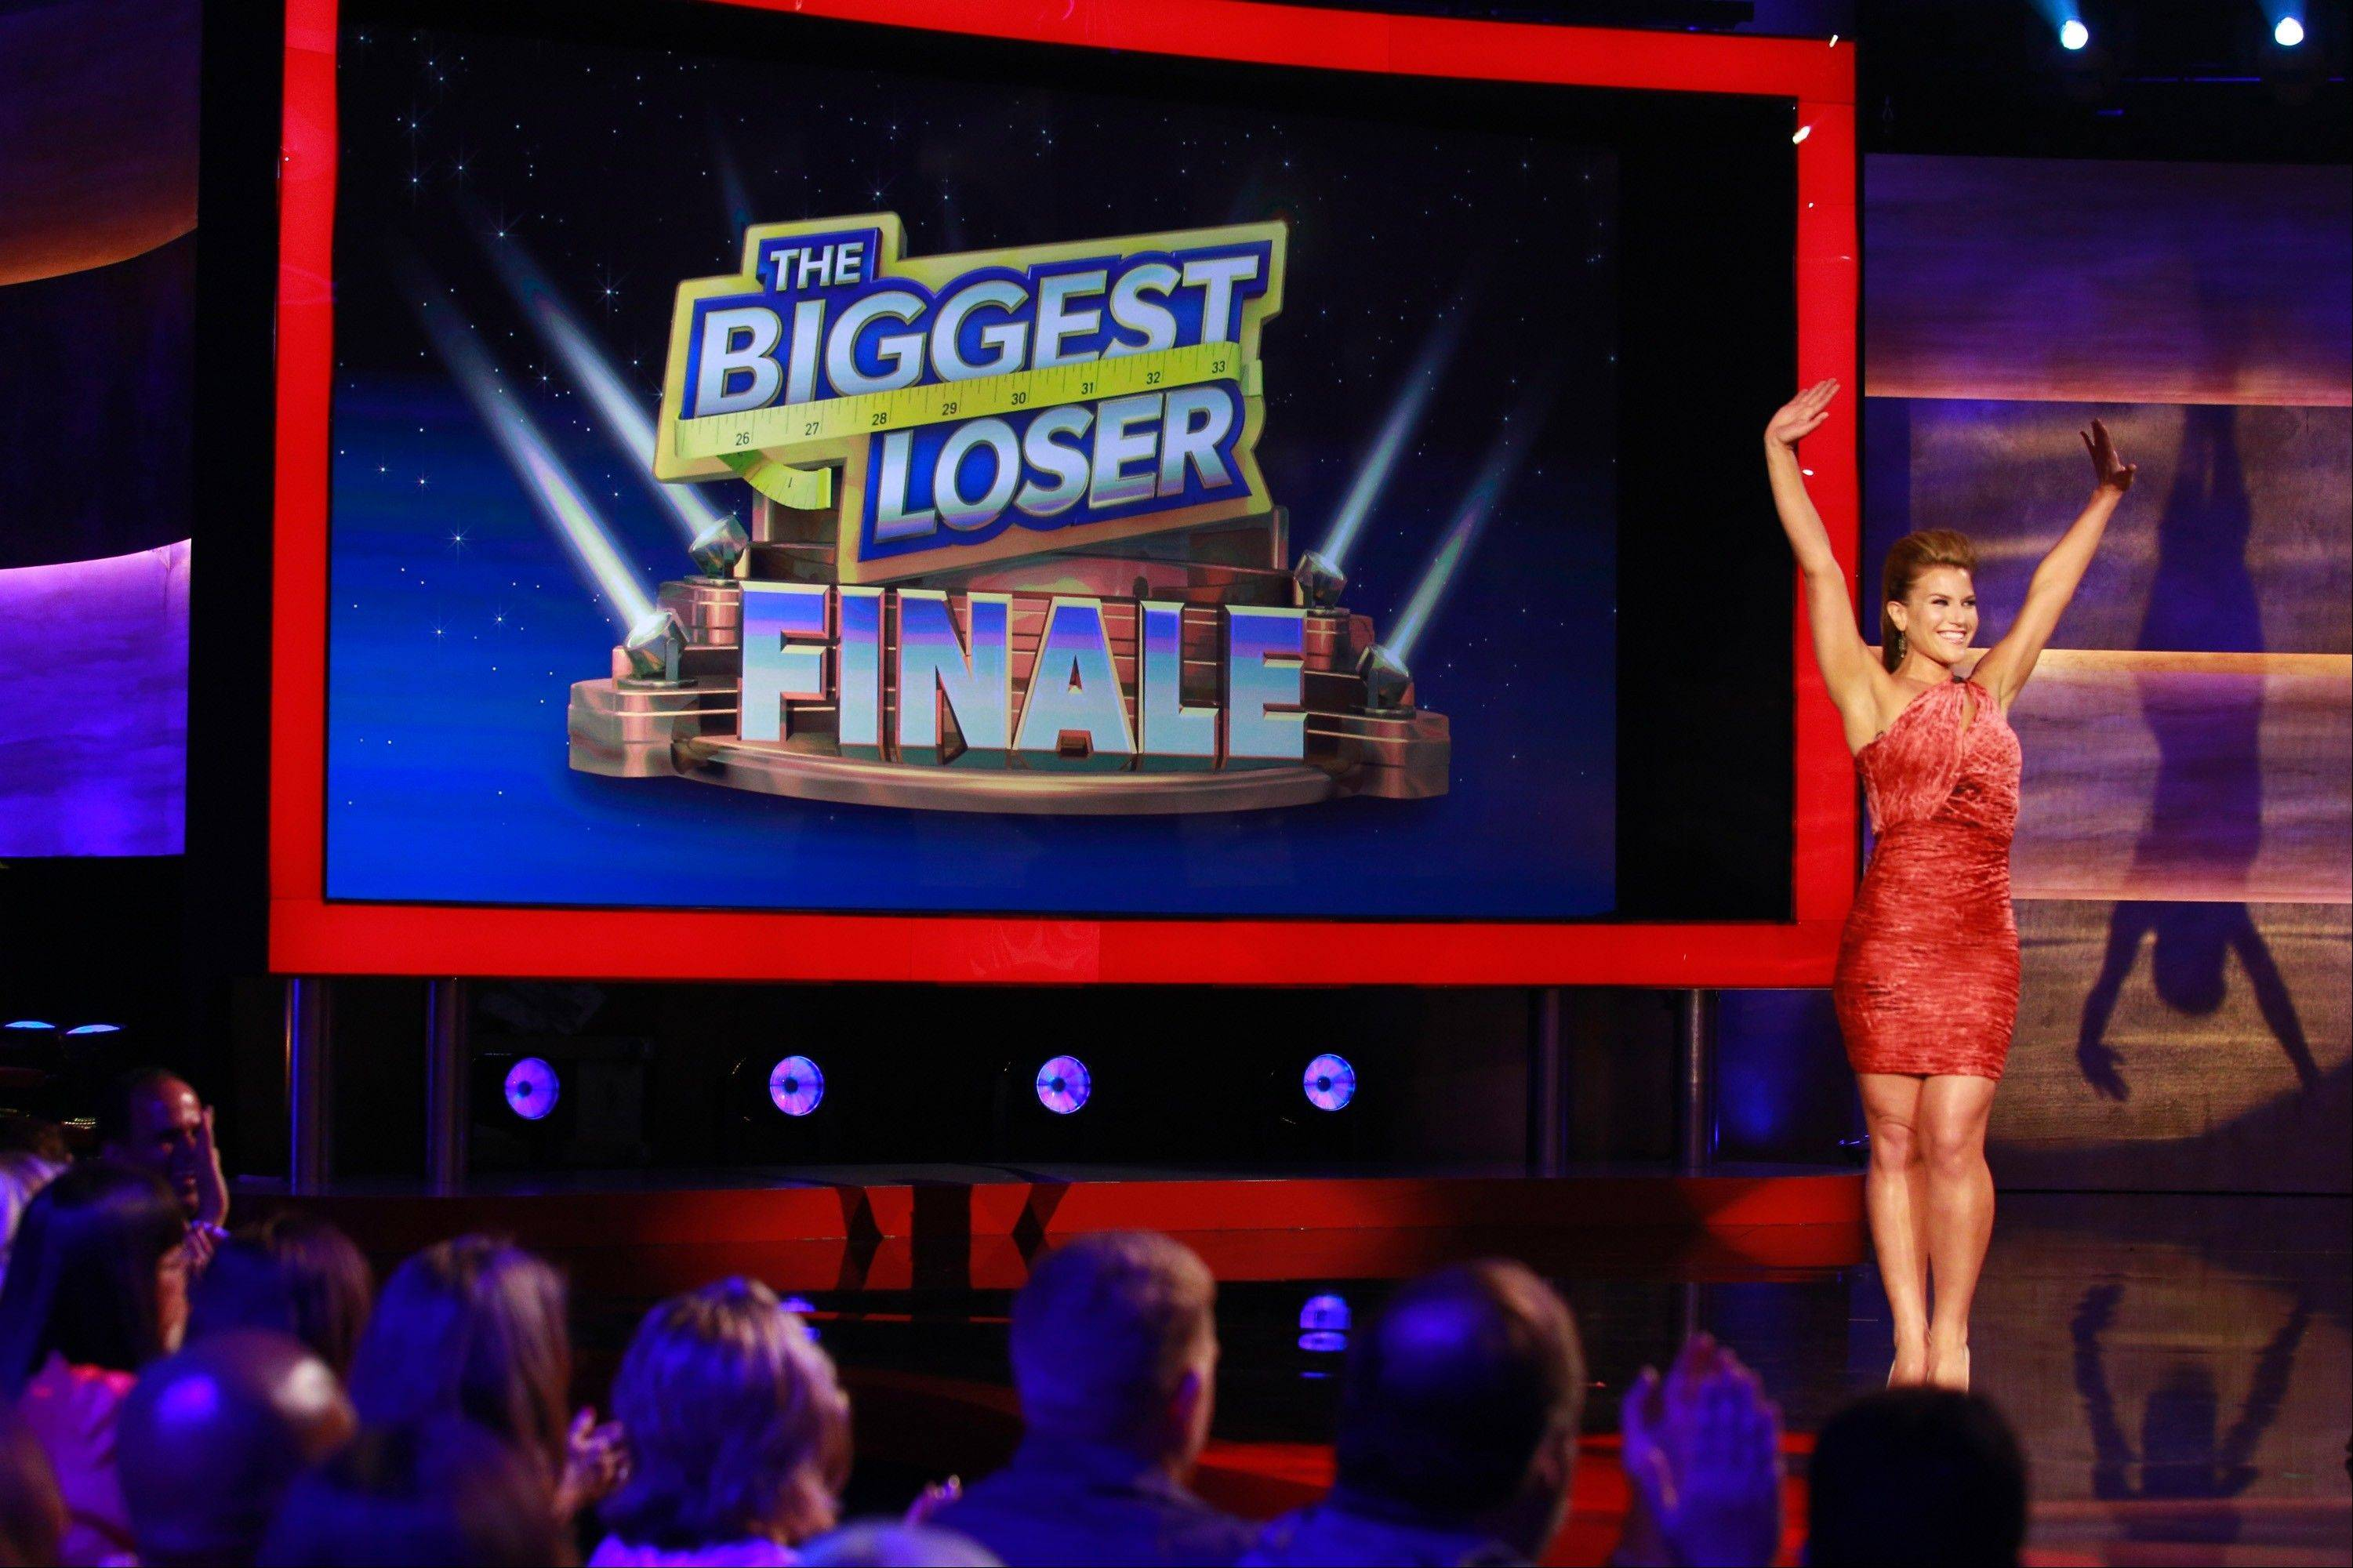 Suburbanite takes 'Biggest Loser' prize